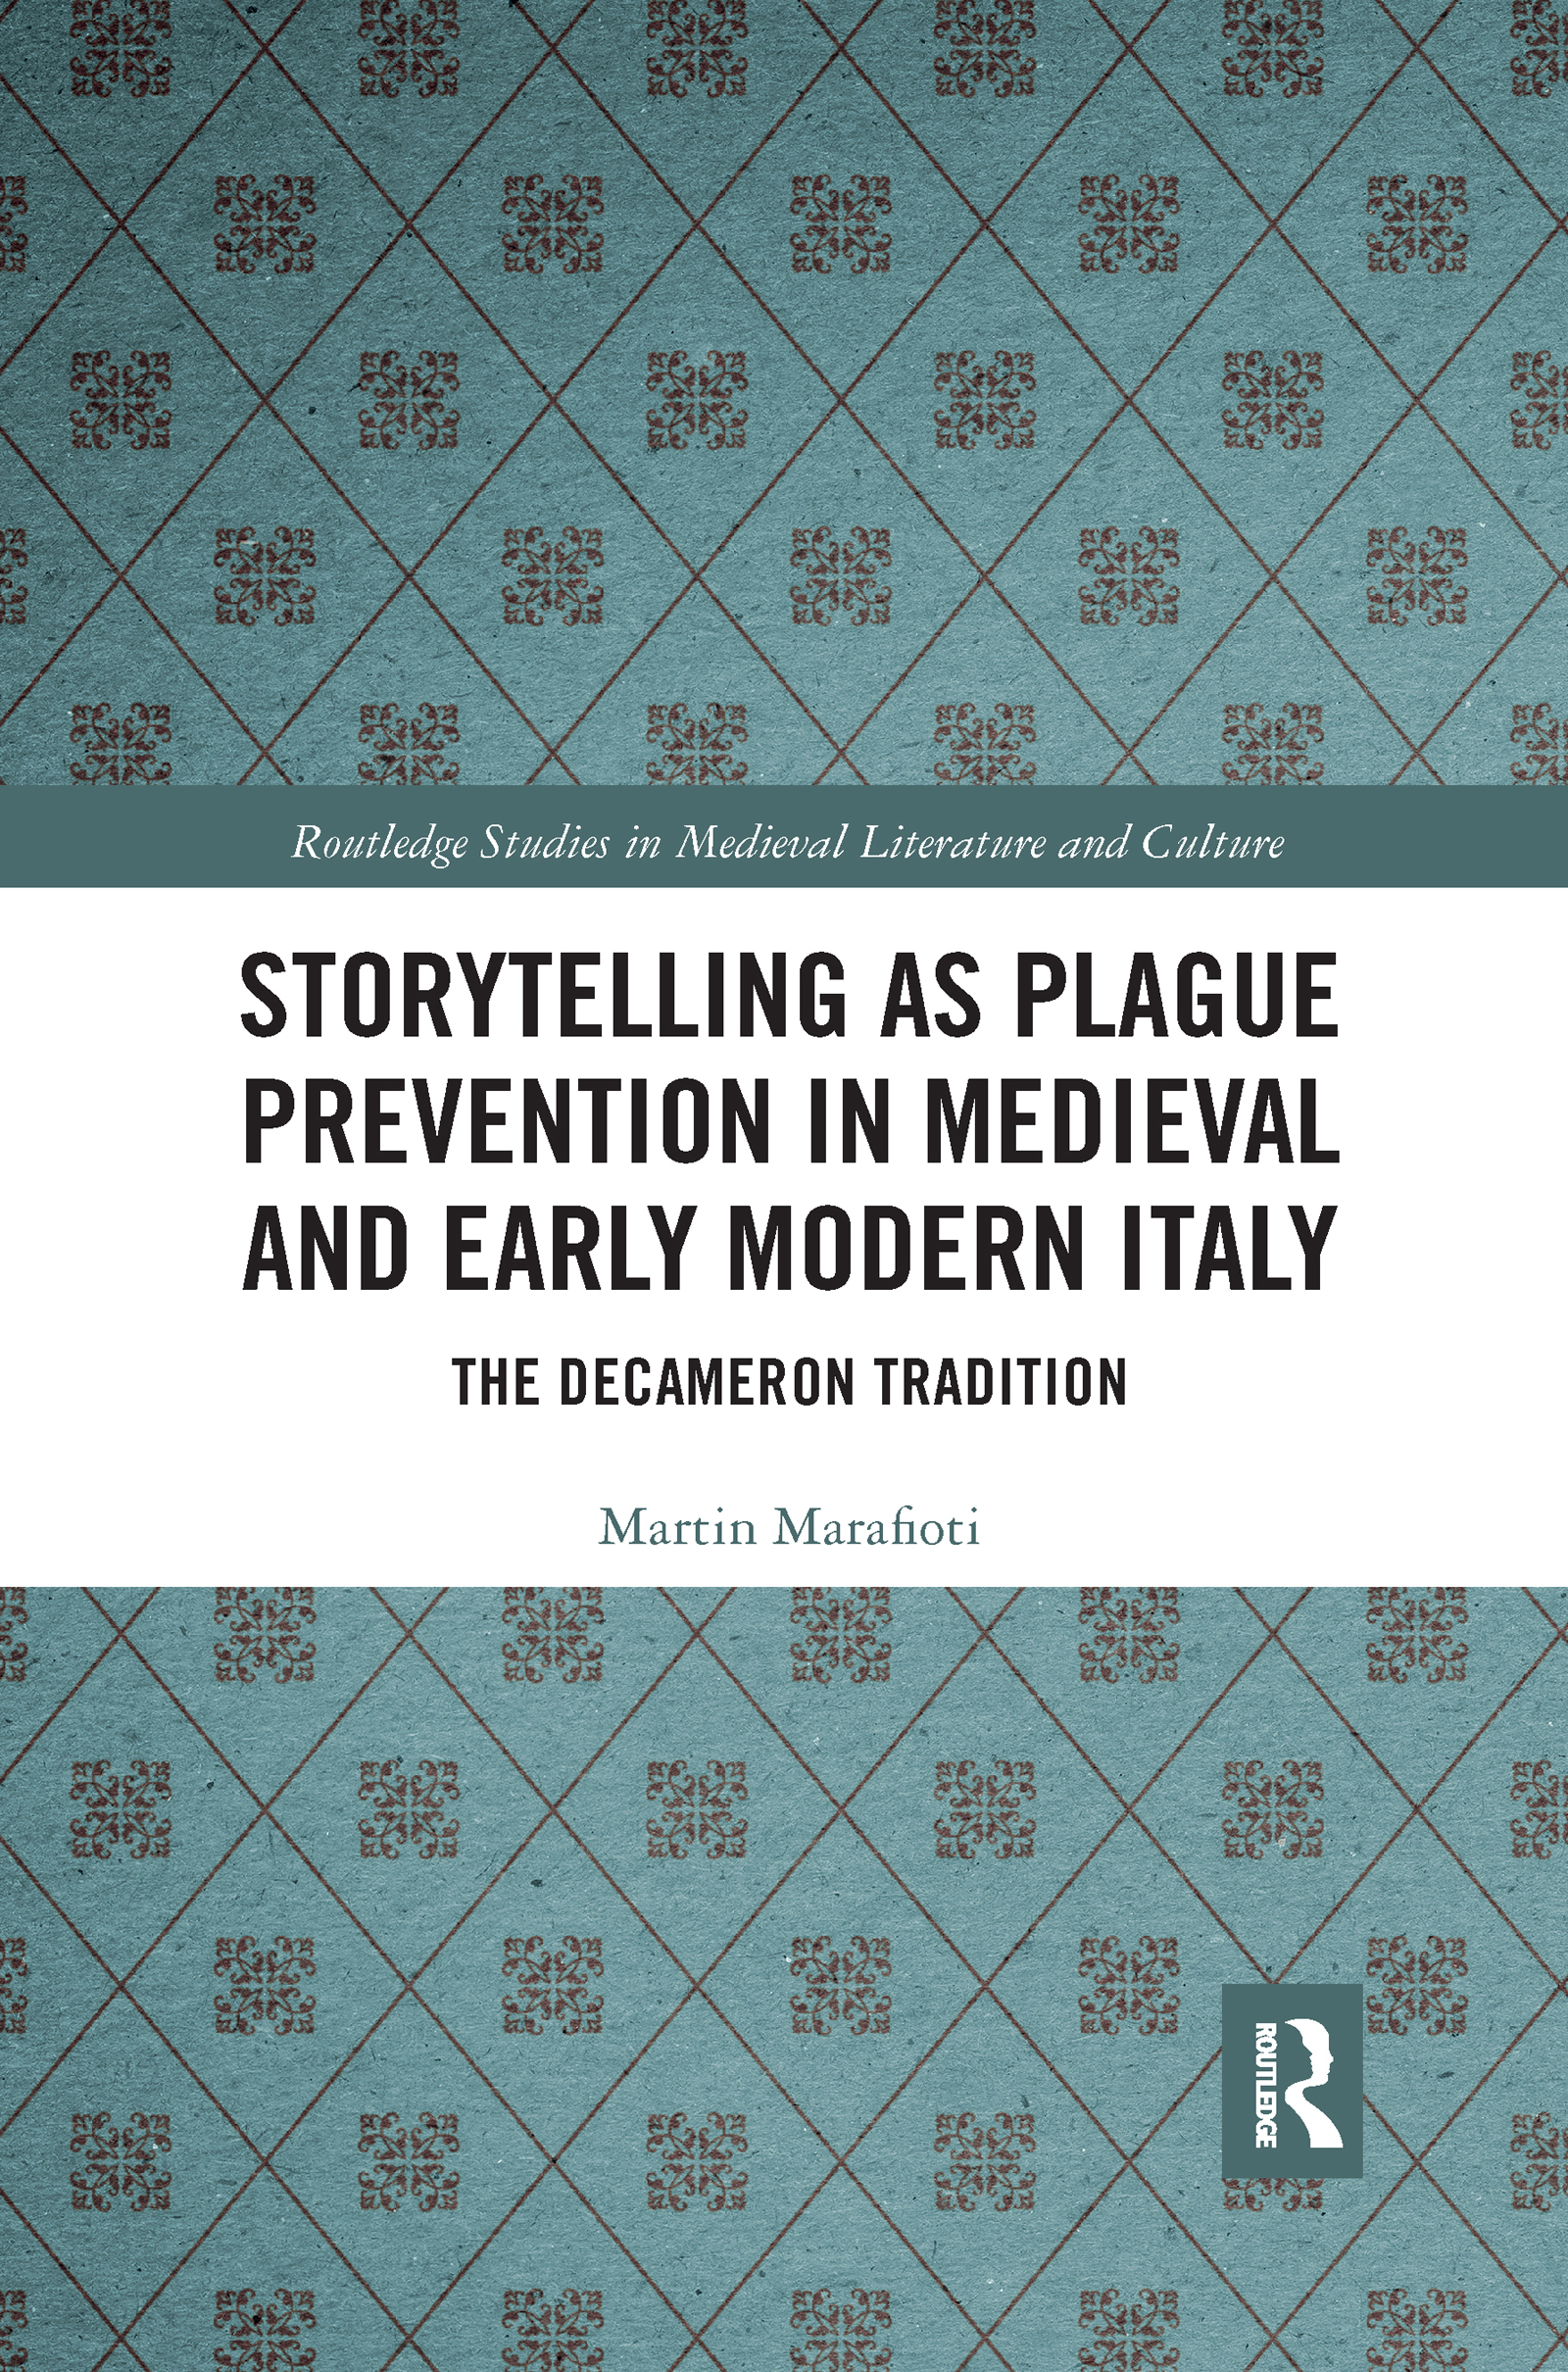 Storytelling as Plague Prevention in Medieval and Early Modern Italy